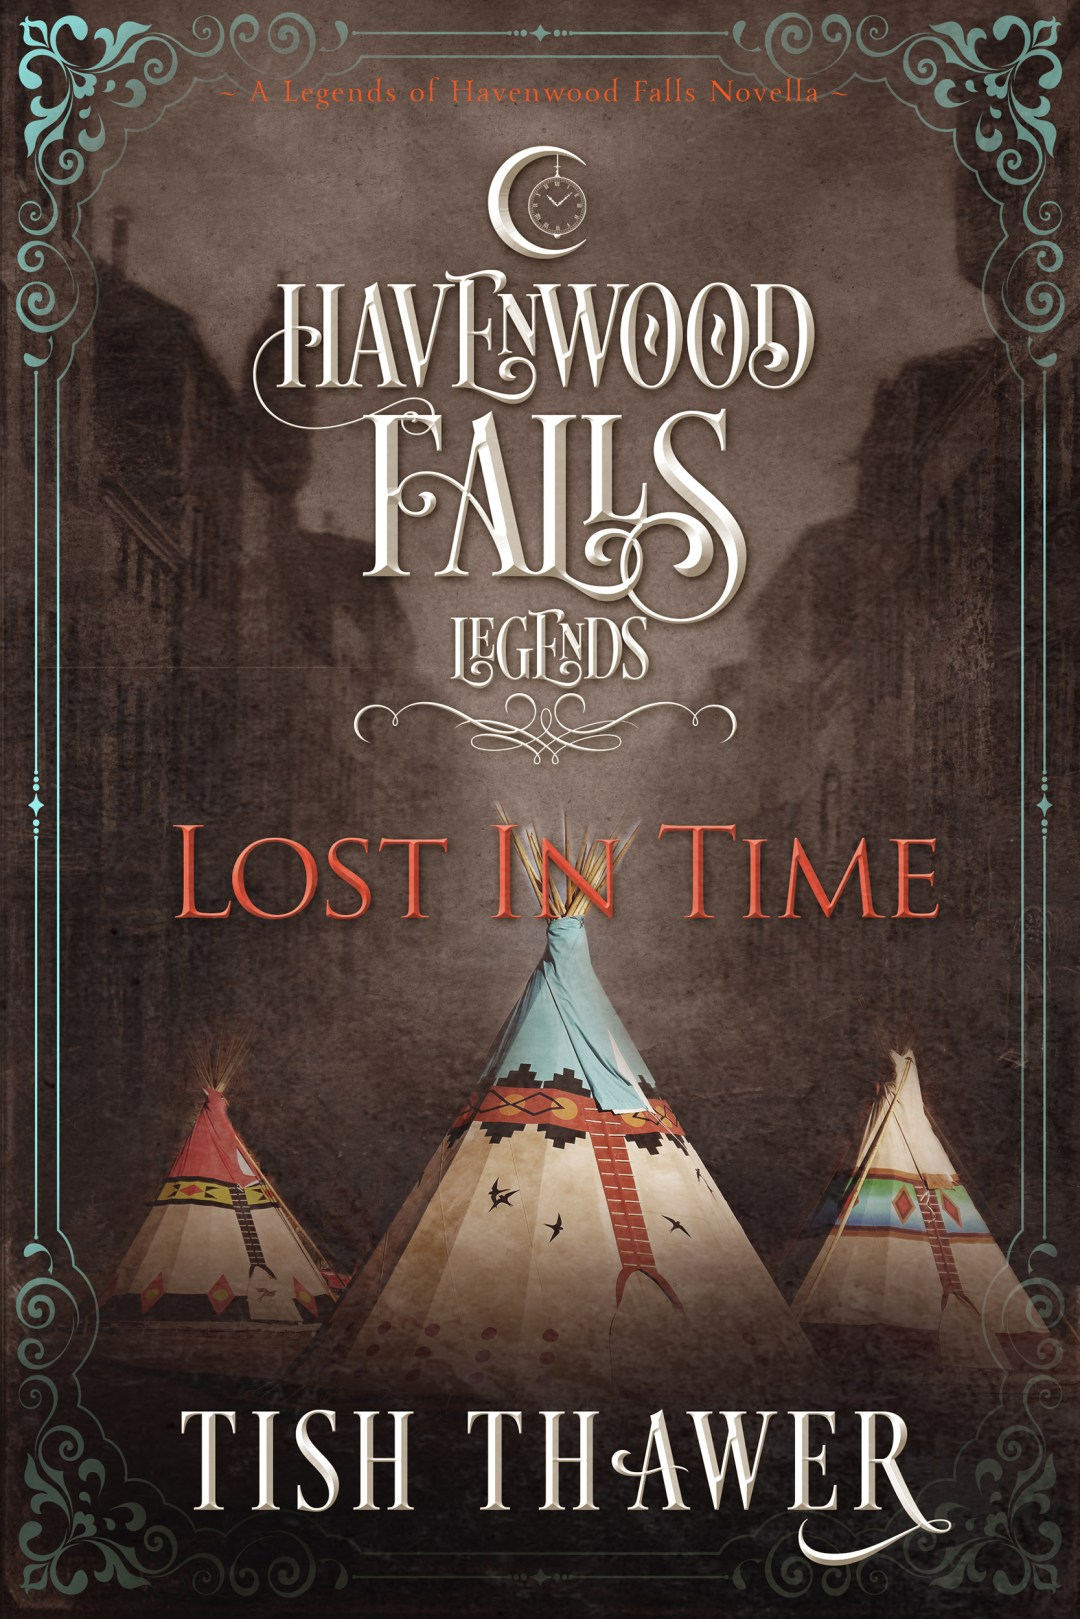 Lost in time a legends of havenwood falls novella by tish thawer but as their deaths loom and their next soul journey awaits they must decide who will protect this special land and the magic of the falls once theyre fandeluxe Choice Image